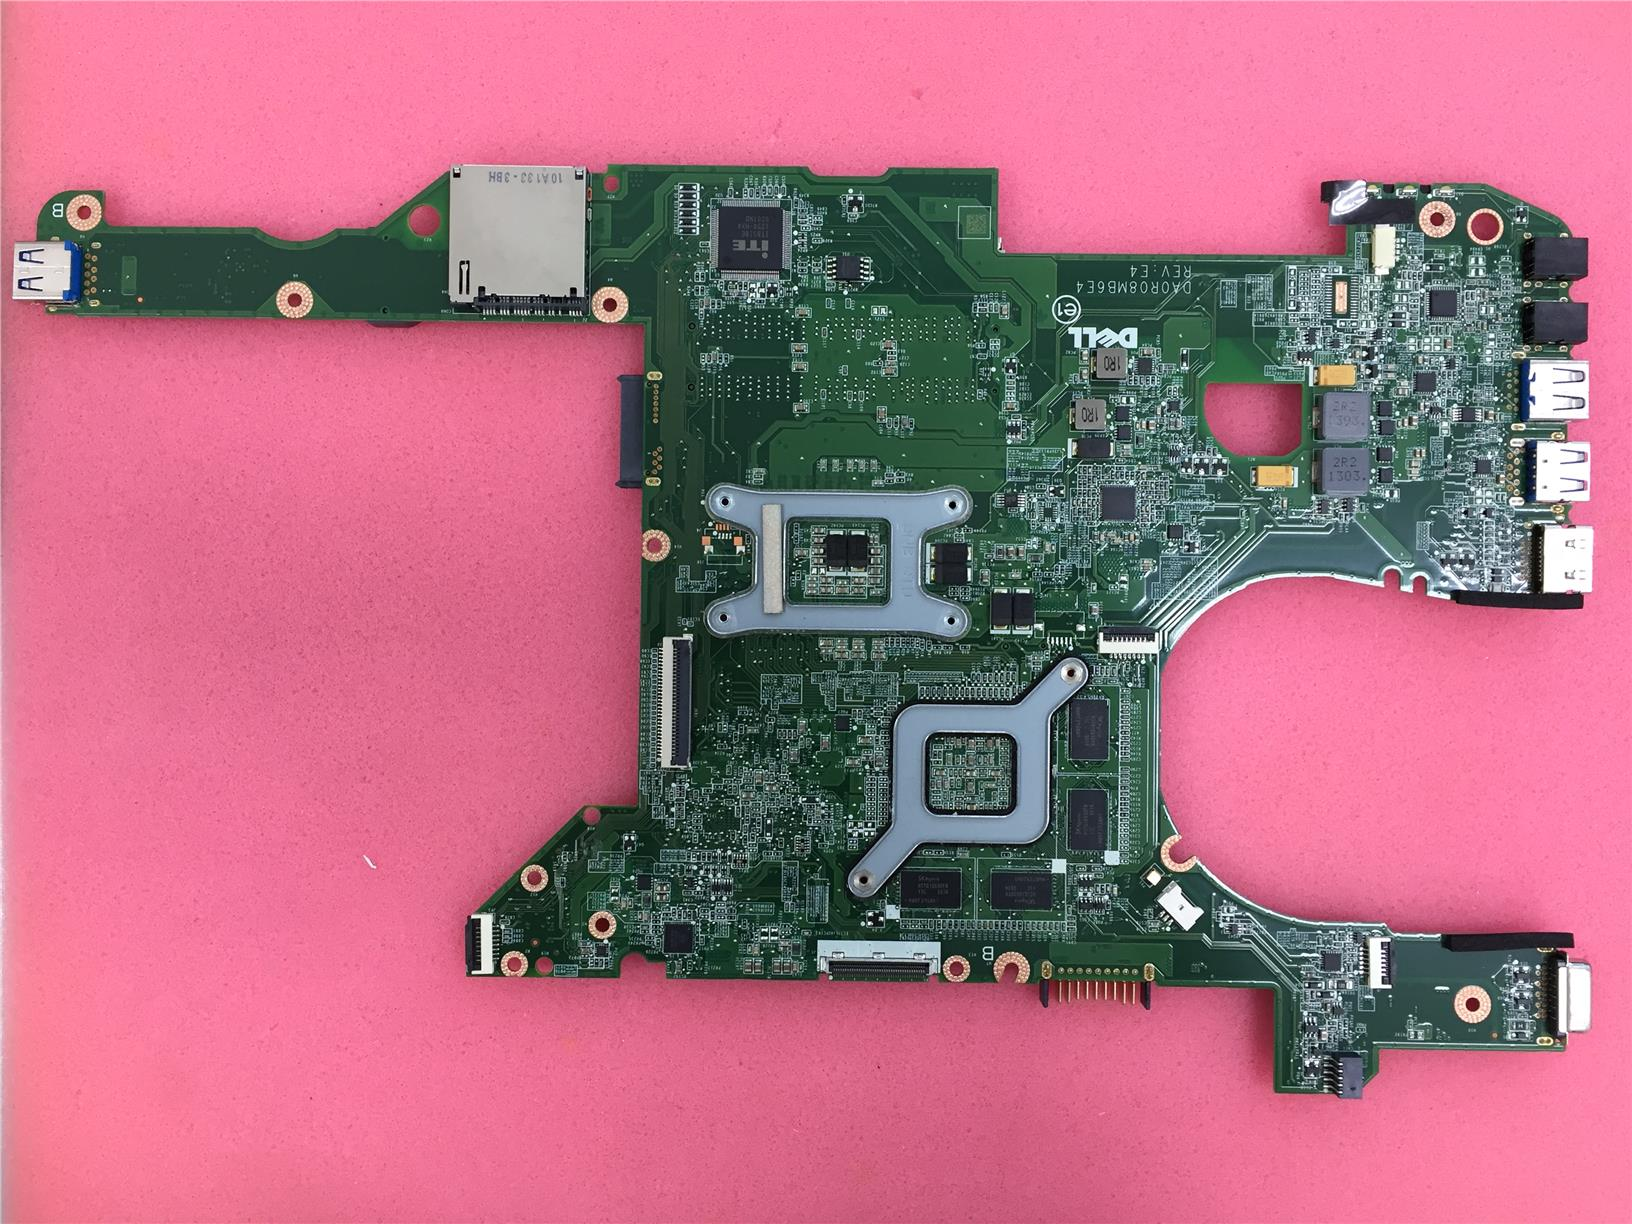 Dell Inspiron 14R 5420 7420 Motherboard System HMGWR 0HMGWR